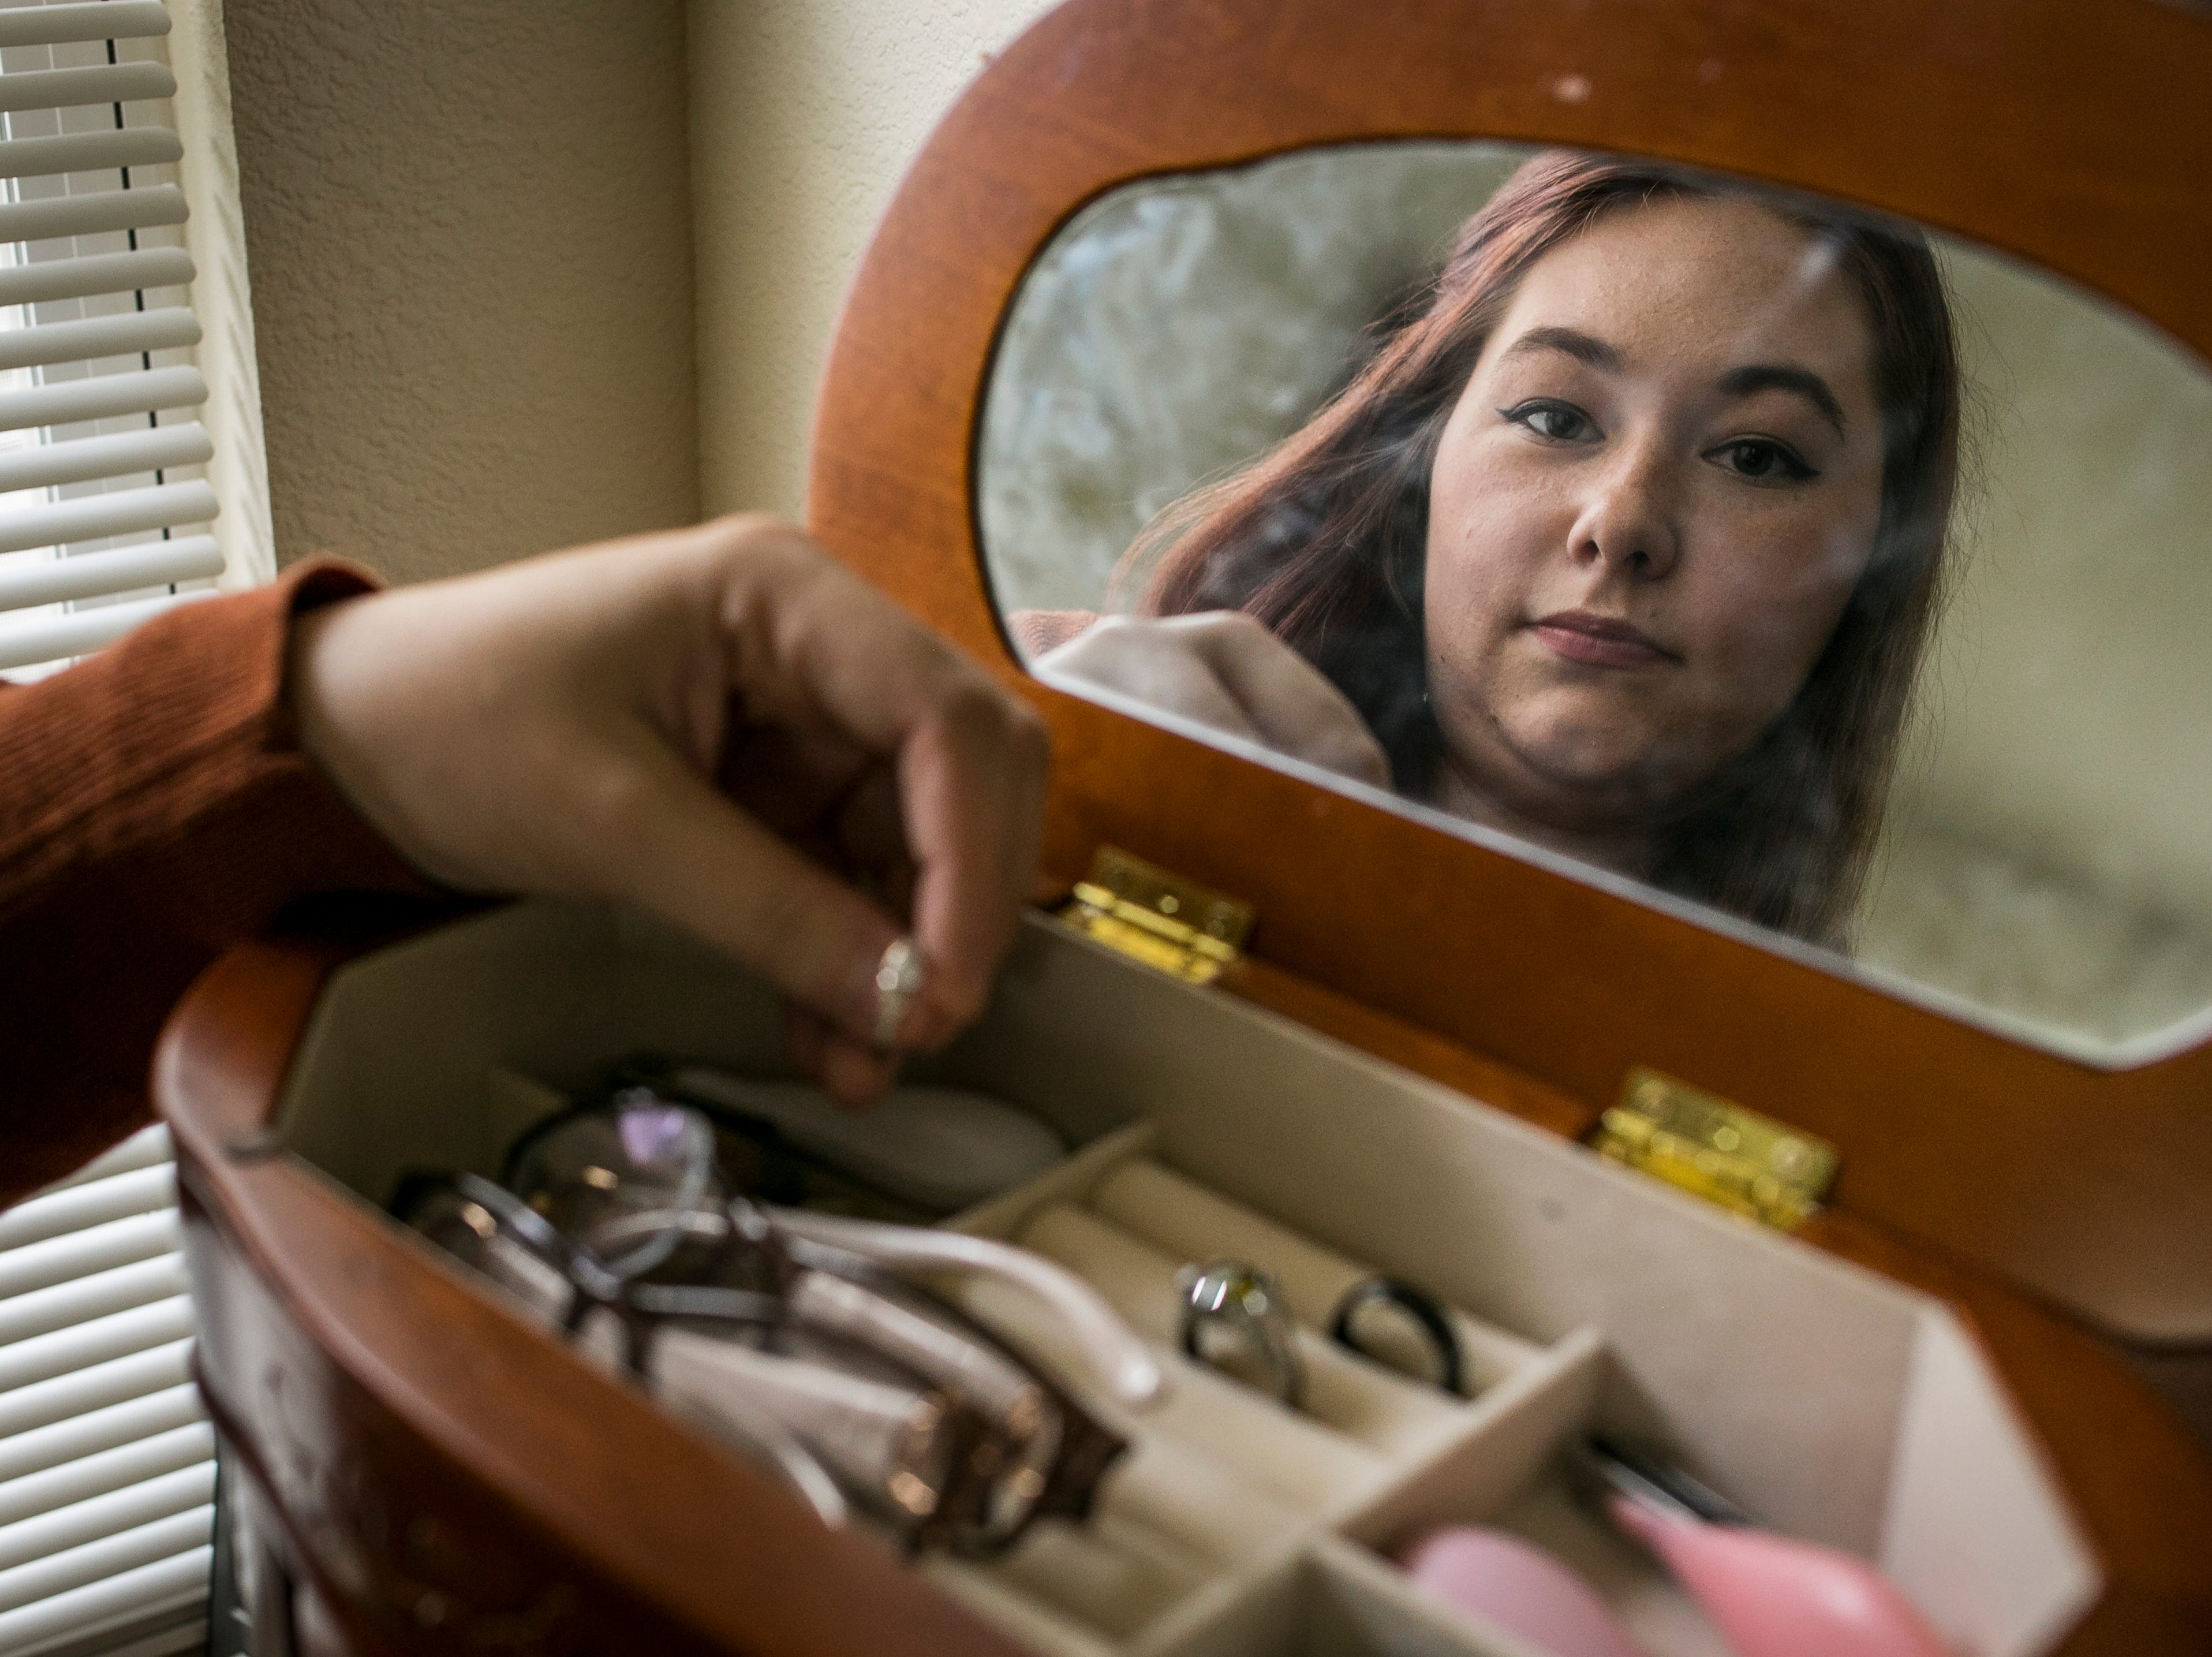 Andrea Cacho looks through her jewelry box where her wedding rings were located before her move to Ft. Belvoir. Cacho believes the rings were stolen by her movers.